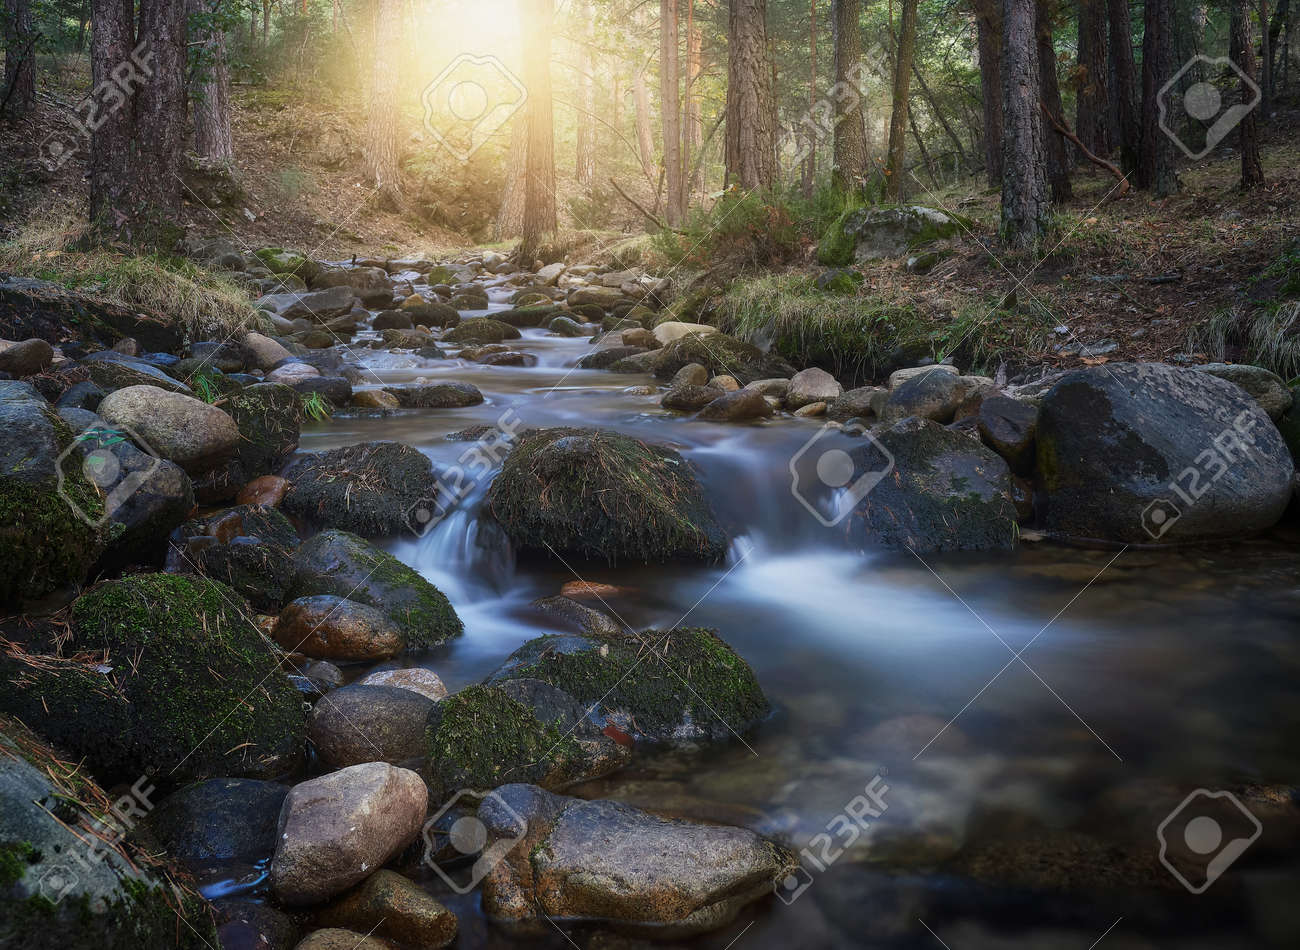 beautiful sunset, with the sunlight entering the pine forest, stream and waterfalls of Valsain in Segovia - 158757698